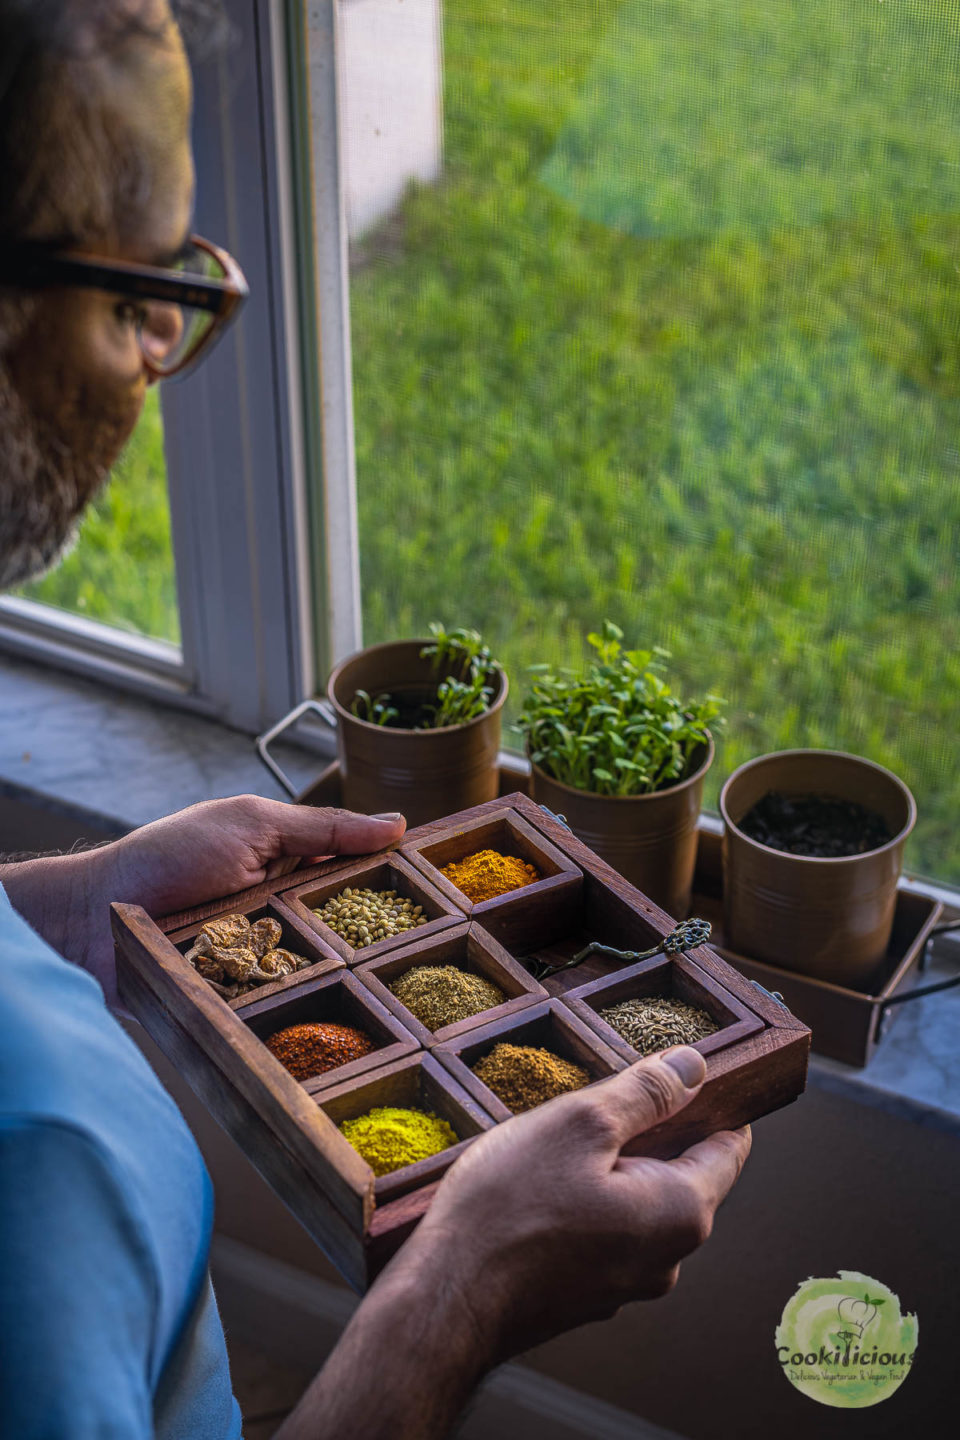 A man holding a spice box containing coriander cumin powder